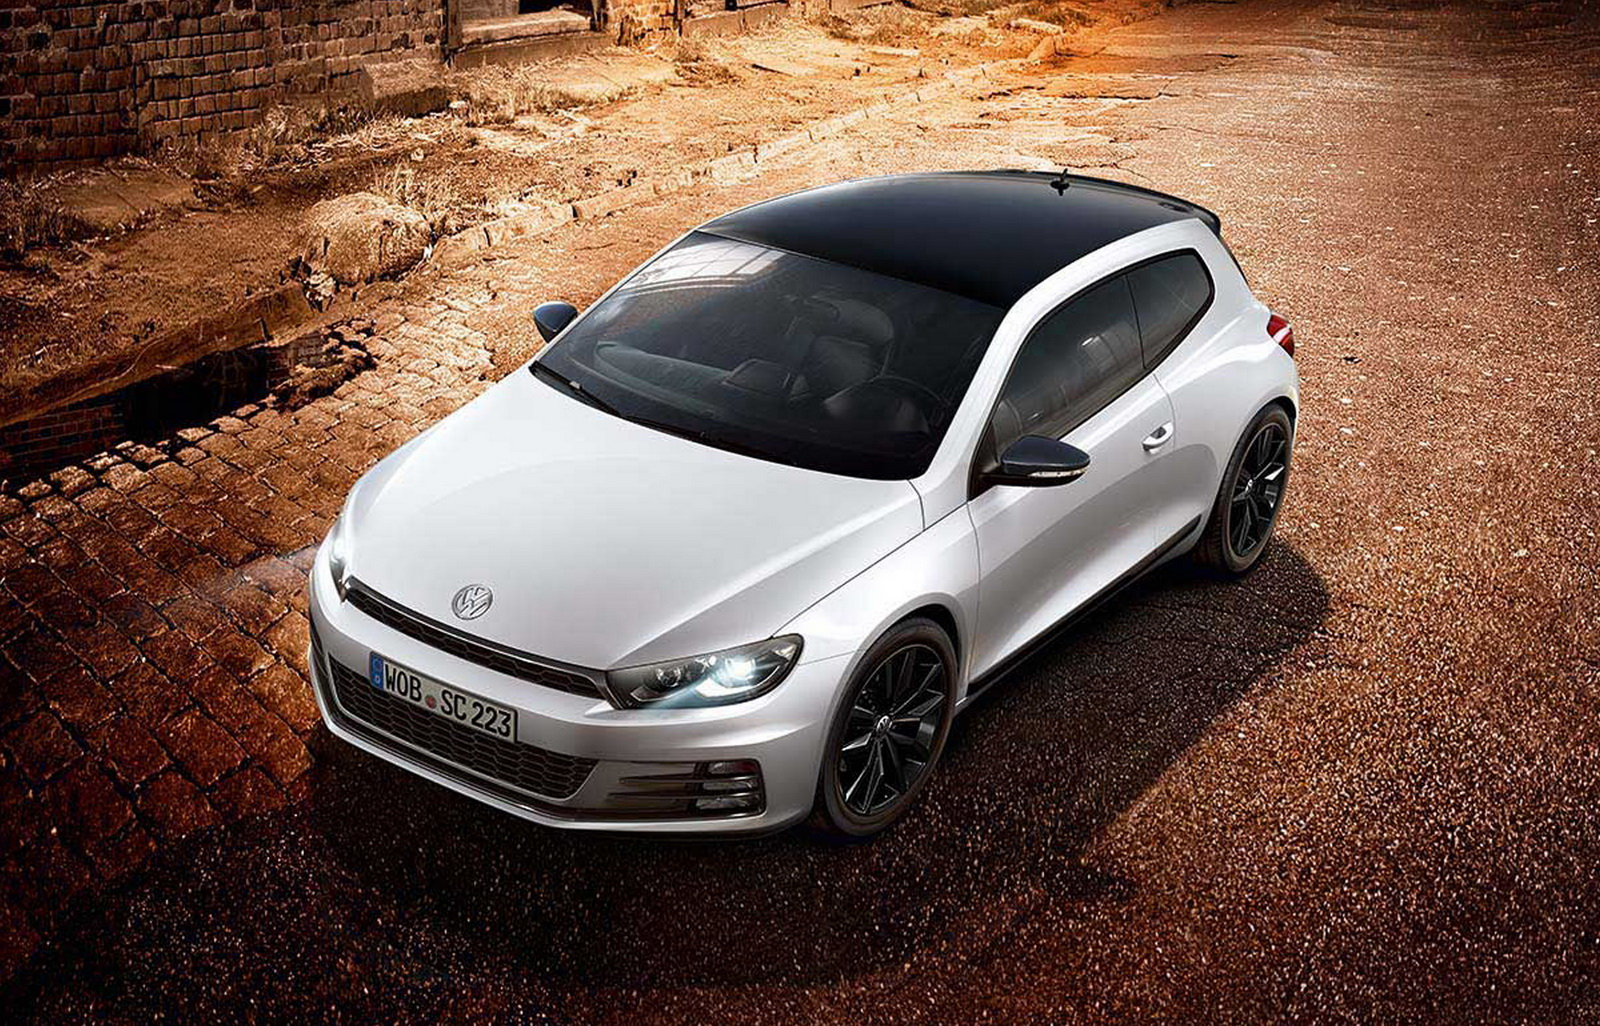 vw scirocco gets revitalized with new black editions. Black Bedroom Furniture Sets. Home Design Ideas